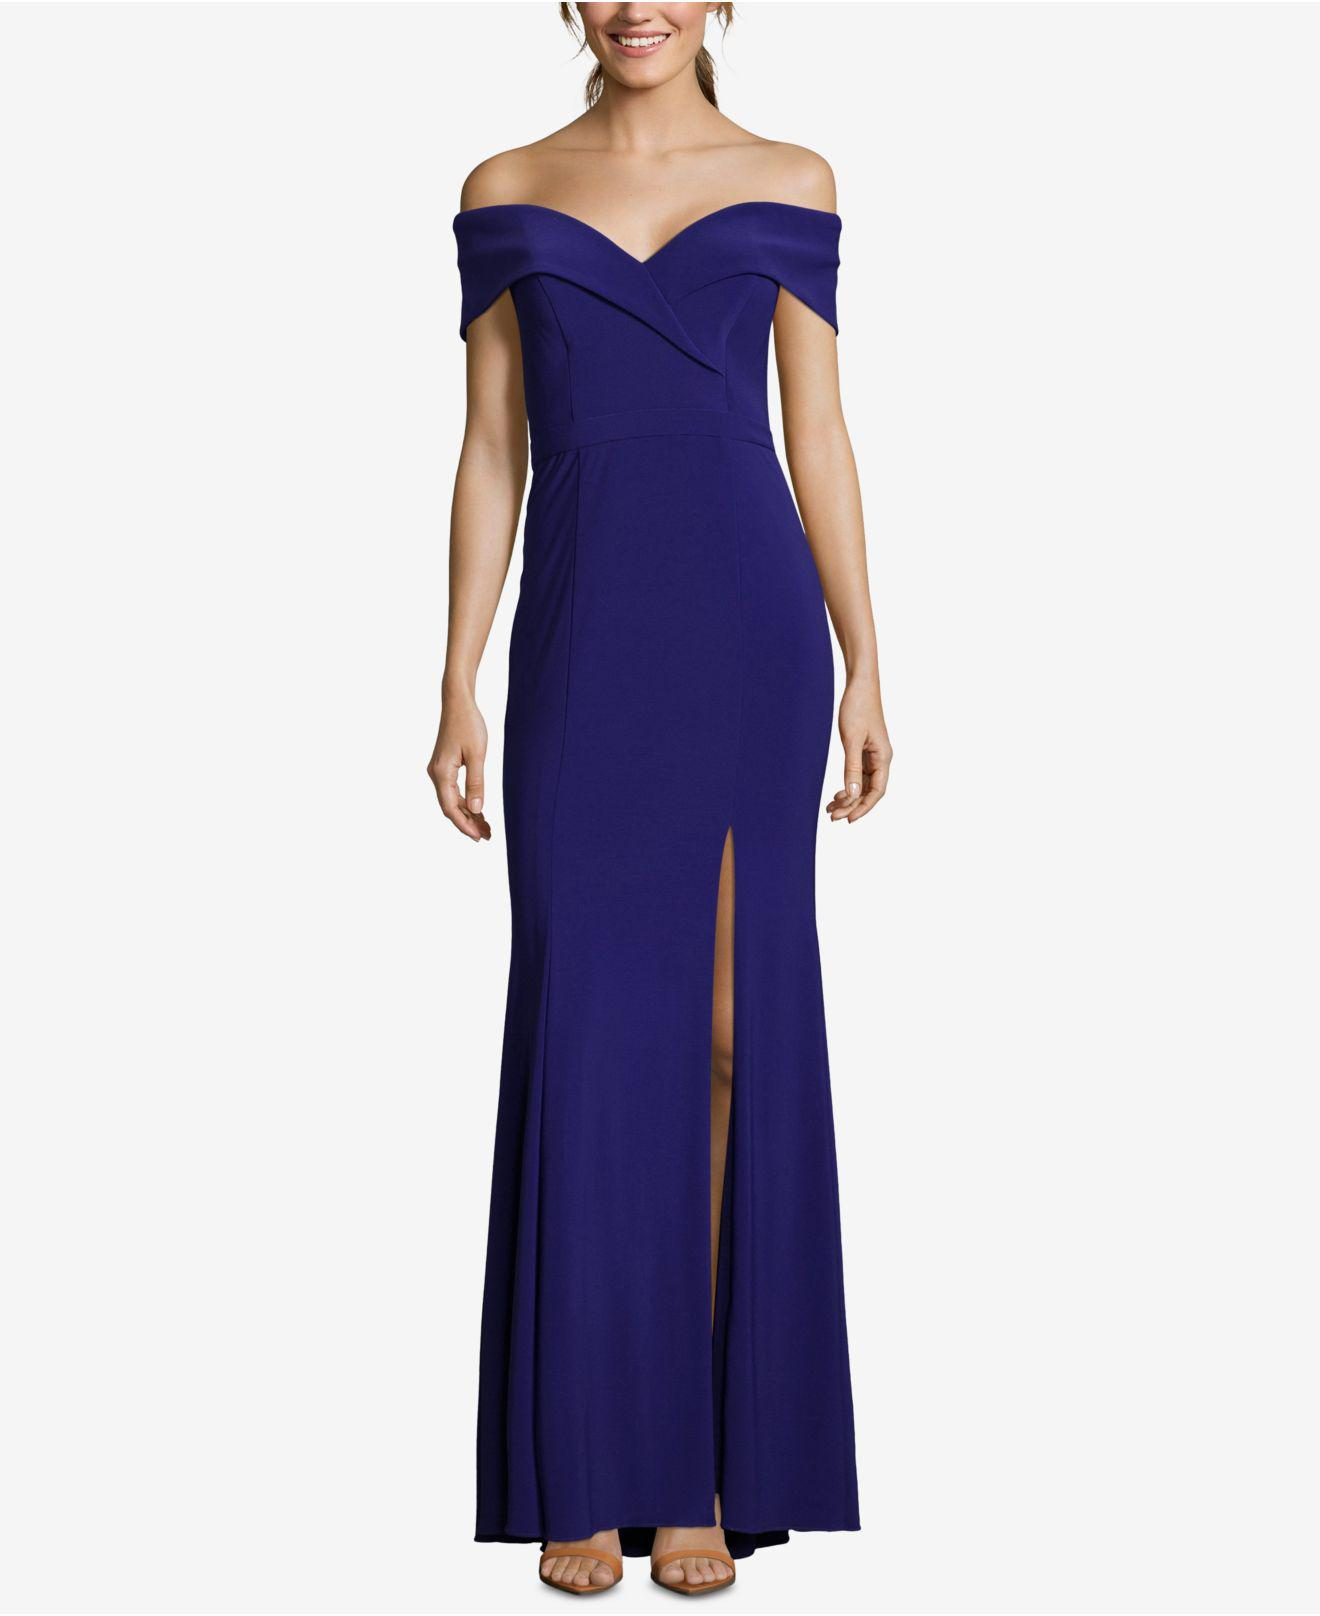 1b08019b Lyst - Xscape Petite Off-the-shoulder Evening Gown in Blue